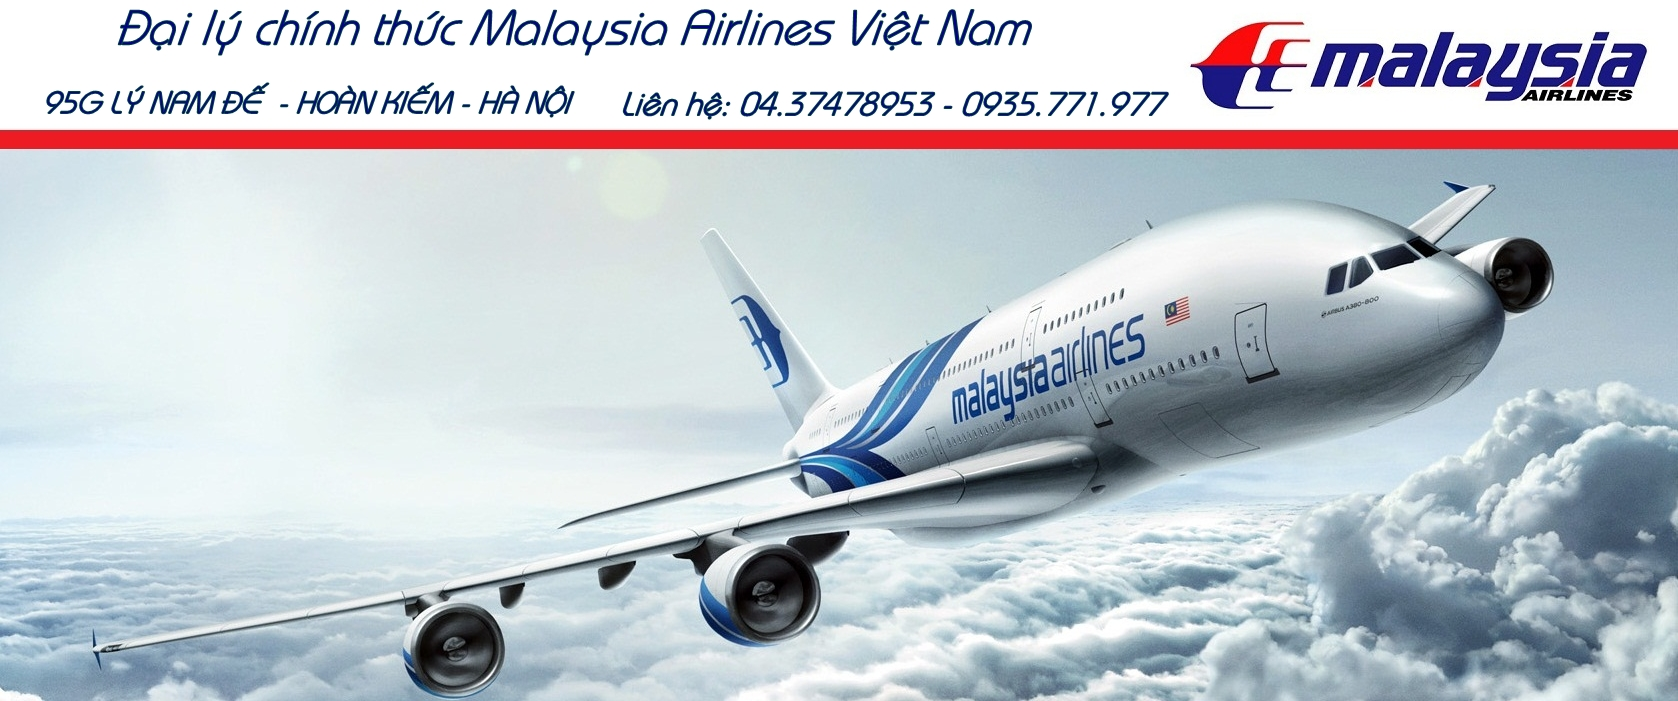 i l v my bay Malaysia Airlines ti Vit Nam, lin h ton quc : 04.37478953.